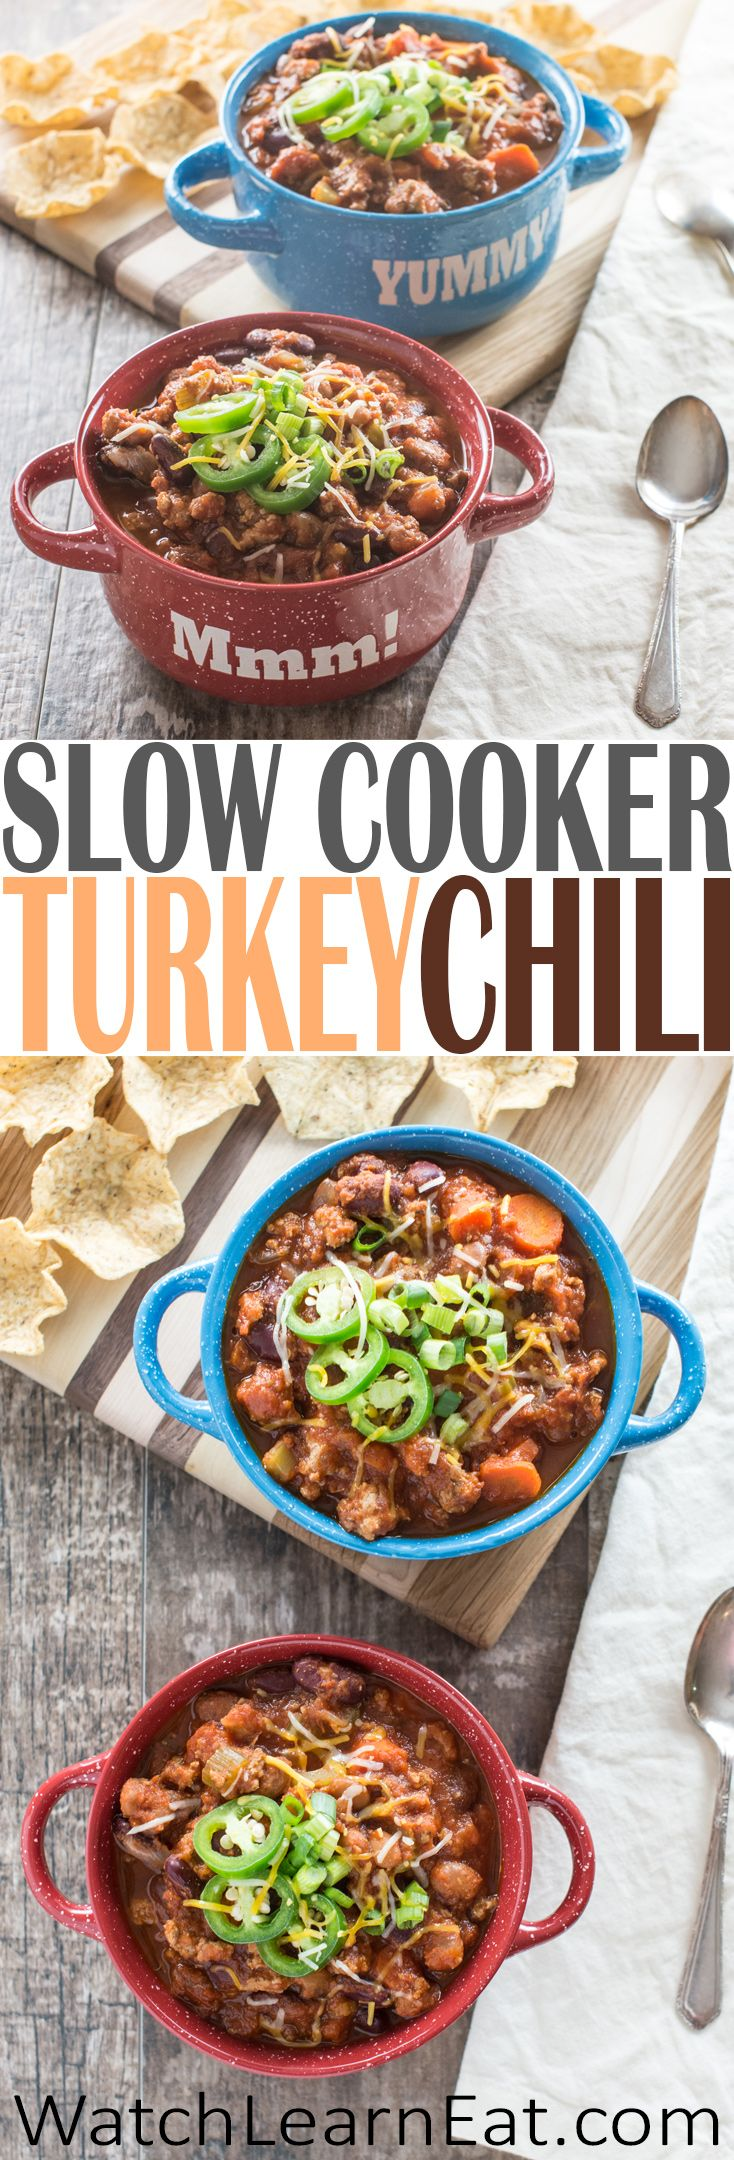 This Slow Cooker Turkey Chili Recipe features ground turkey, kidney beans, pinto beans and fresh vegetables for a hearty and healthy meal.